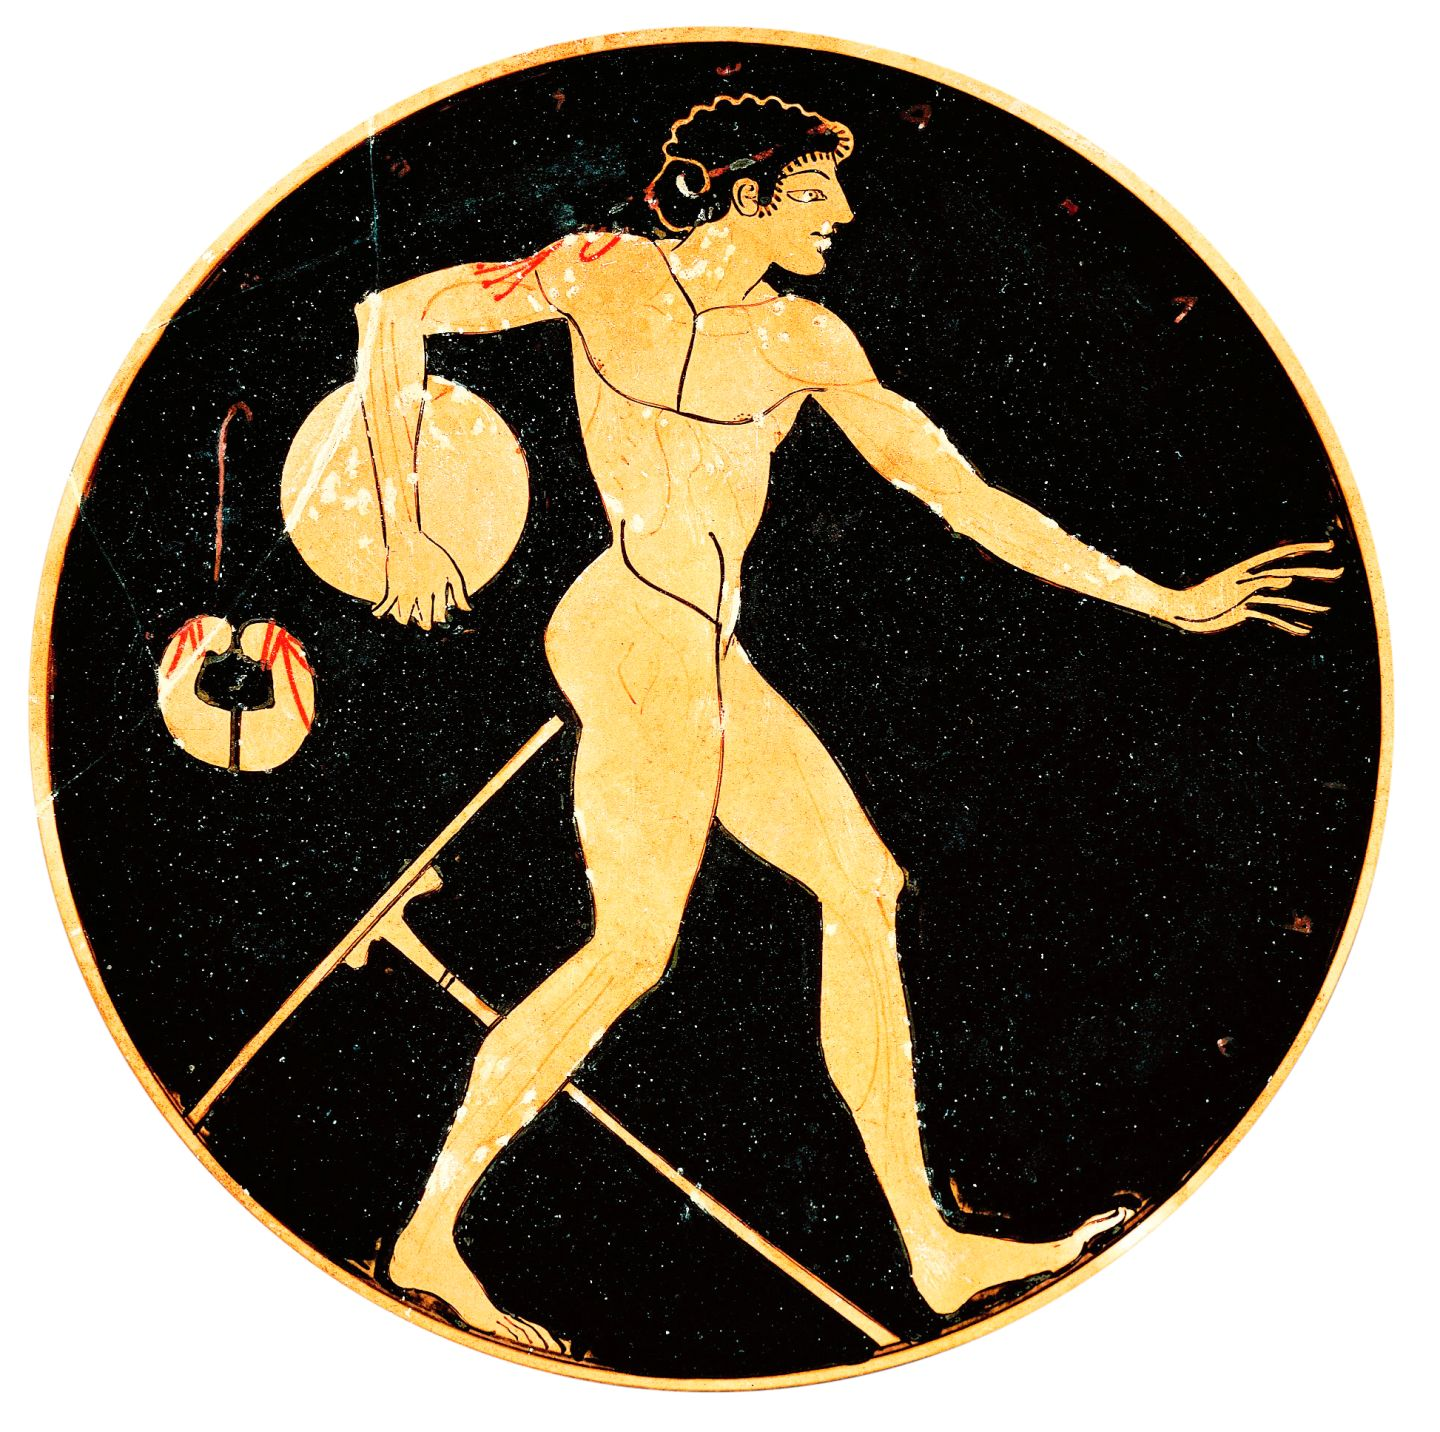 an analysis of the topic of the ancient greece Links and information on ancient greece: history, mythology, art and architecture, olympics, wars, people, geography, etc.